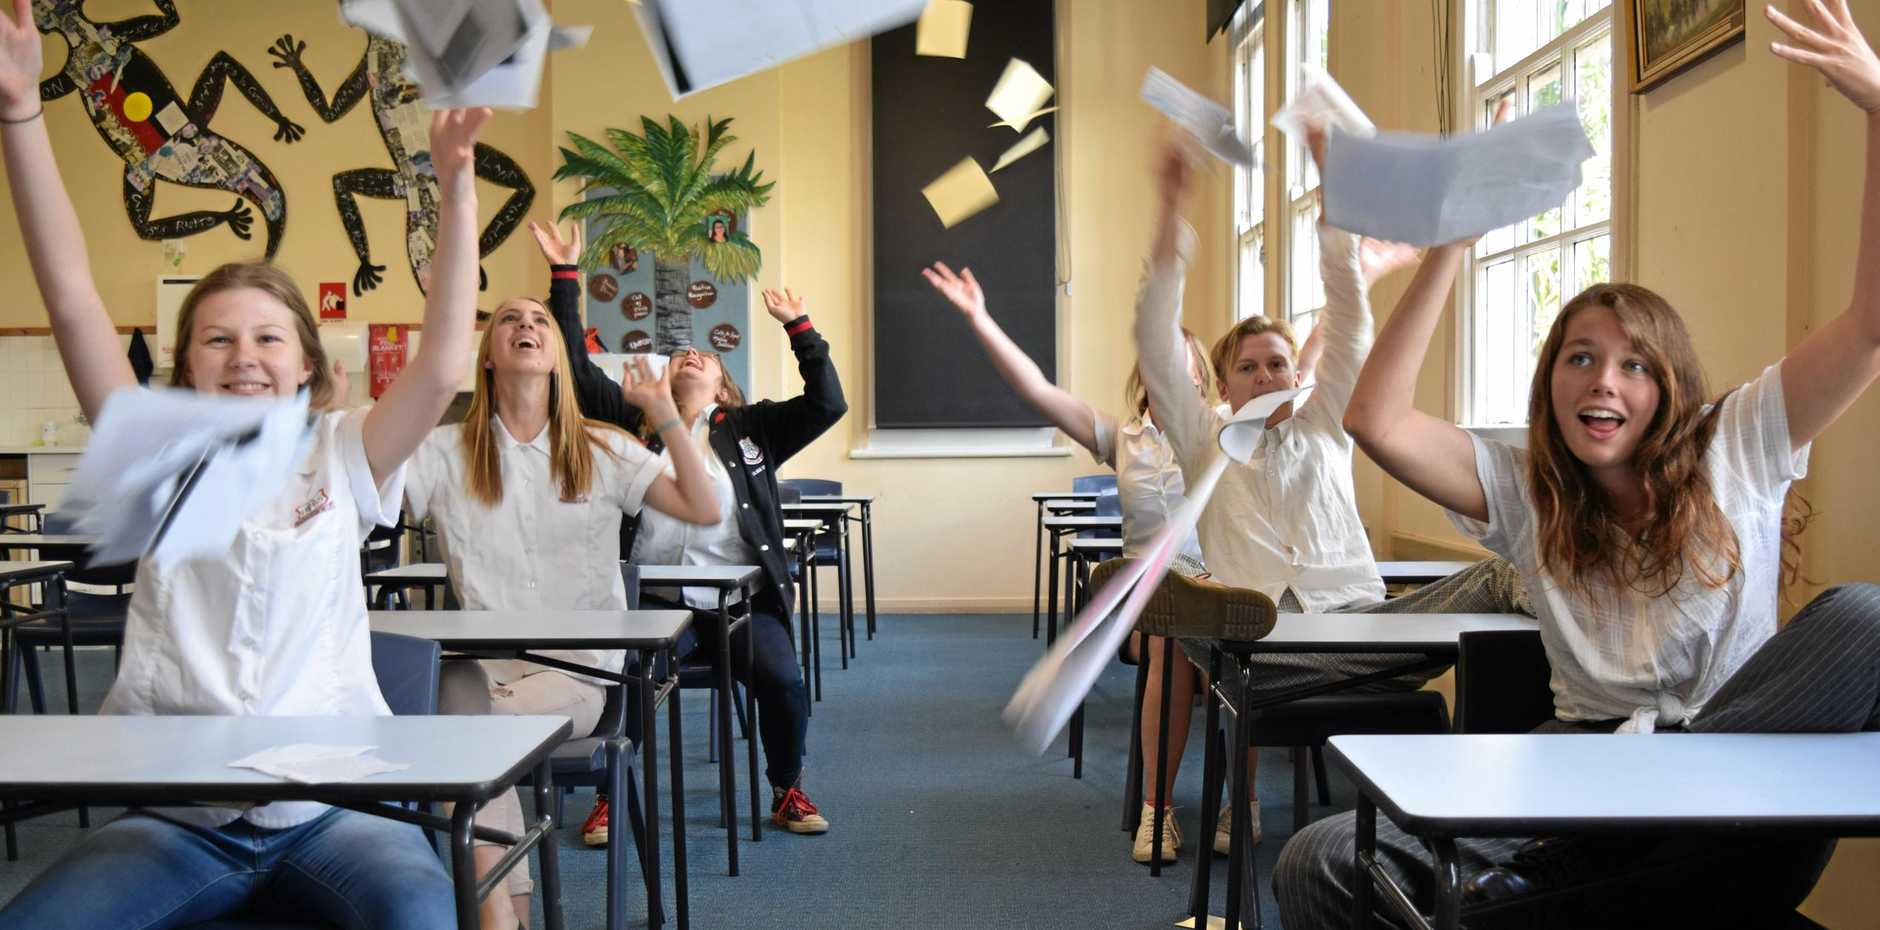 HSC-ya later! Go out and have some fun, the future can wait.